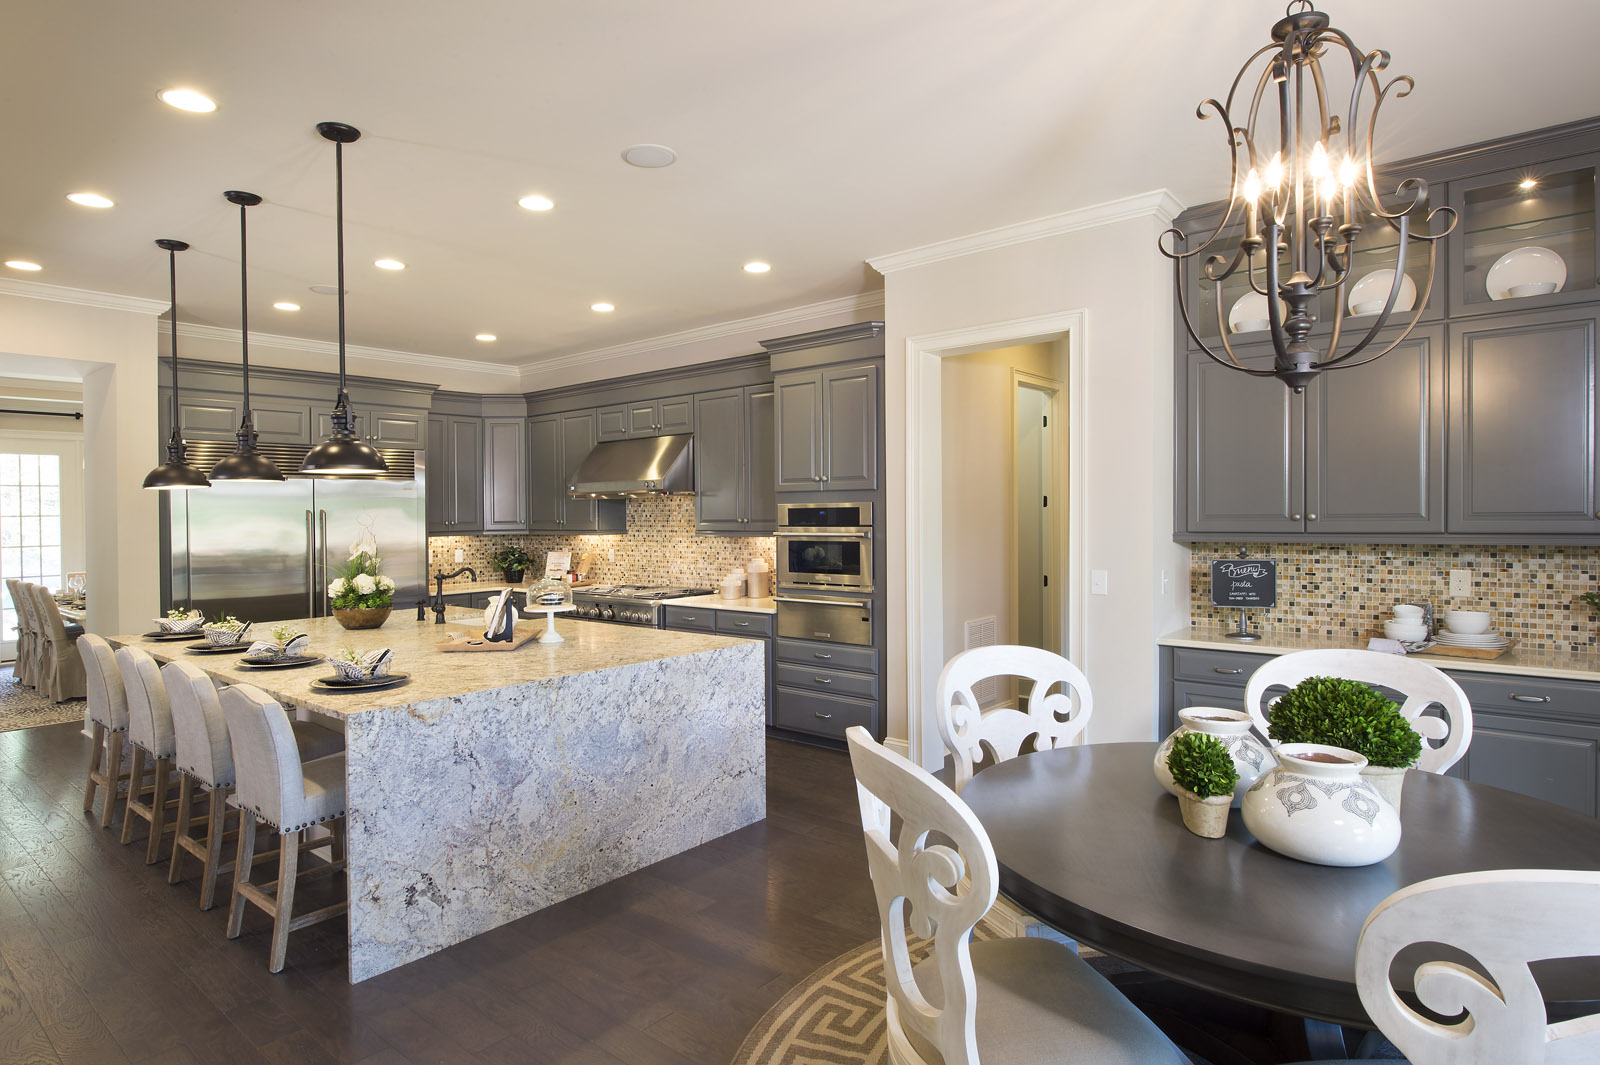 Merveilleux Free Shea Homes Design Center Scottsdale Az Home And Style With Model  Kitchens Model Home Kitchens